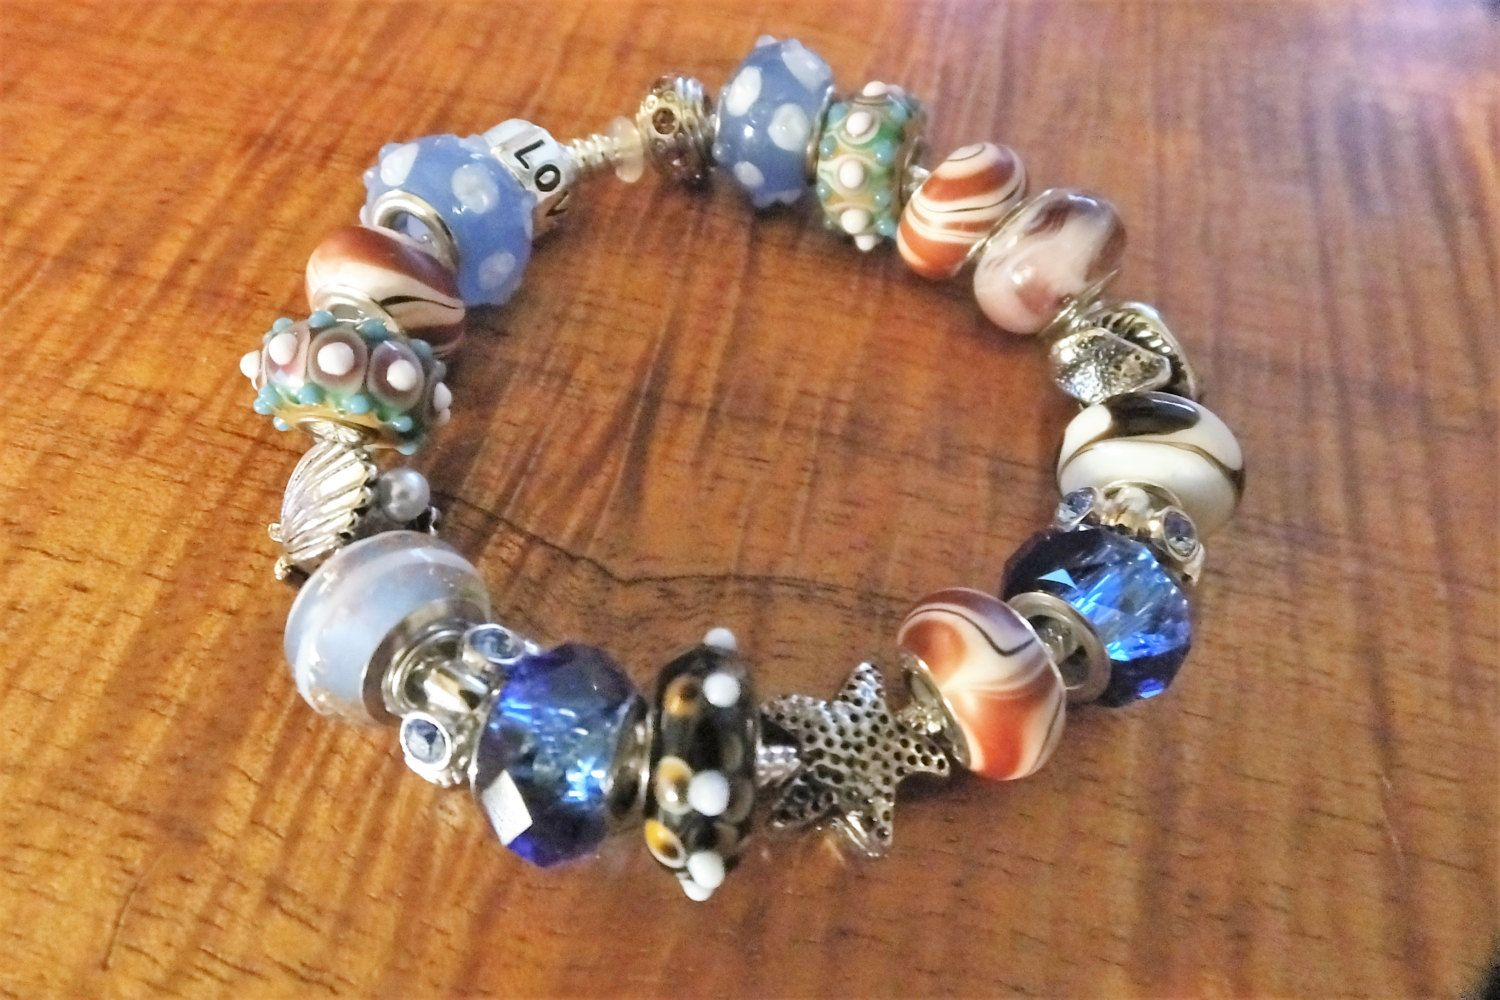 Sandy Shores - A European Silver-Plated Charm Bracelet with charm pieces, of ocean blues, sandy browns, seashells starfish SS51516 by BlingItOutLoudCharms on Etsy